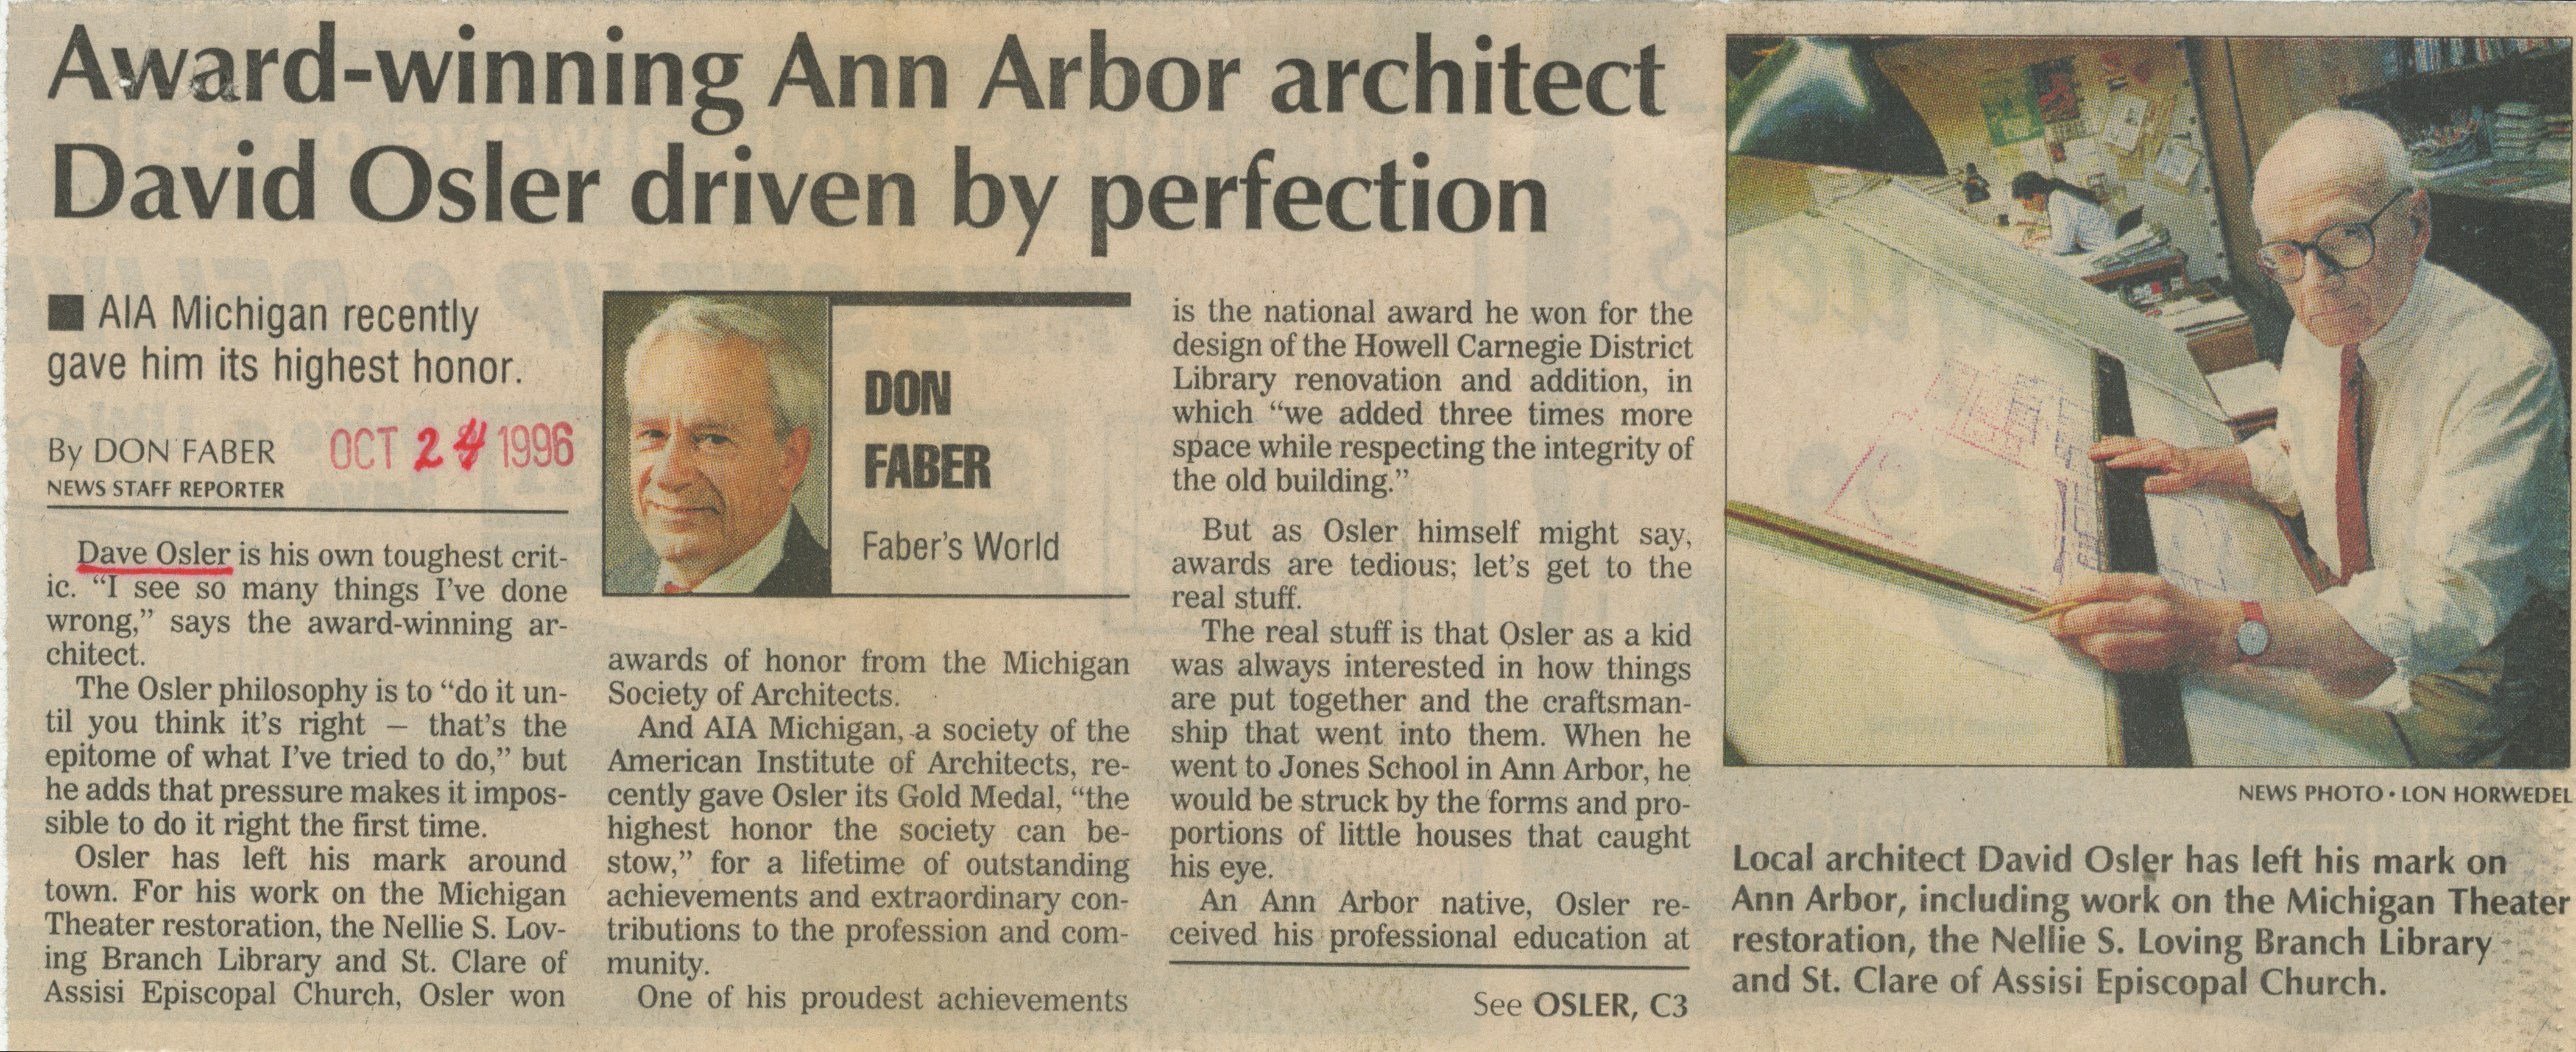 Faber's World: Award-Winning Ann Arbor Architect David Osler Driven By Perfection, AIA Michigan Recently Gave Him Its Highest Honor image